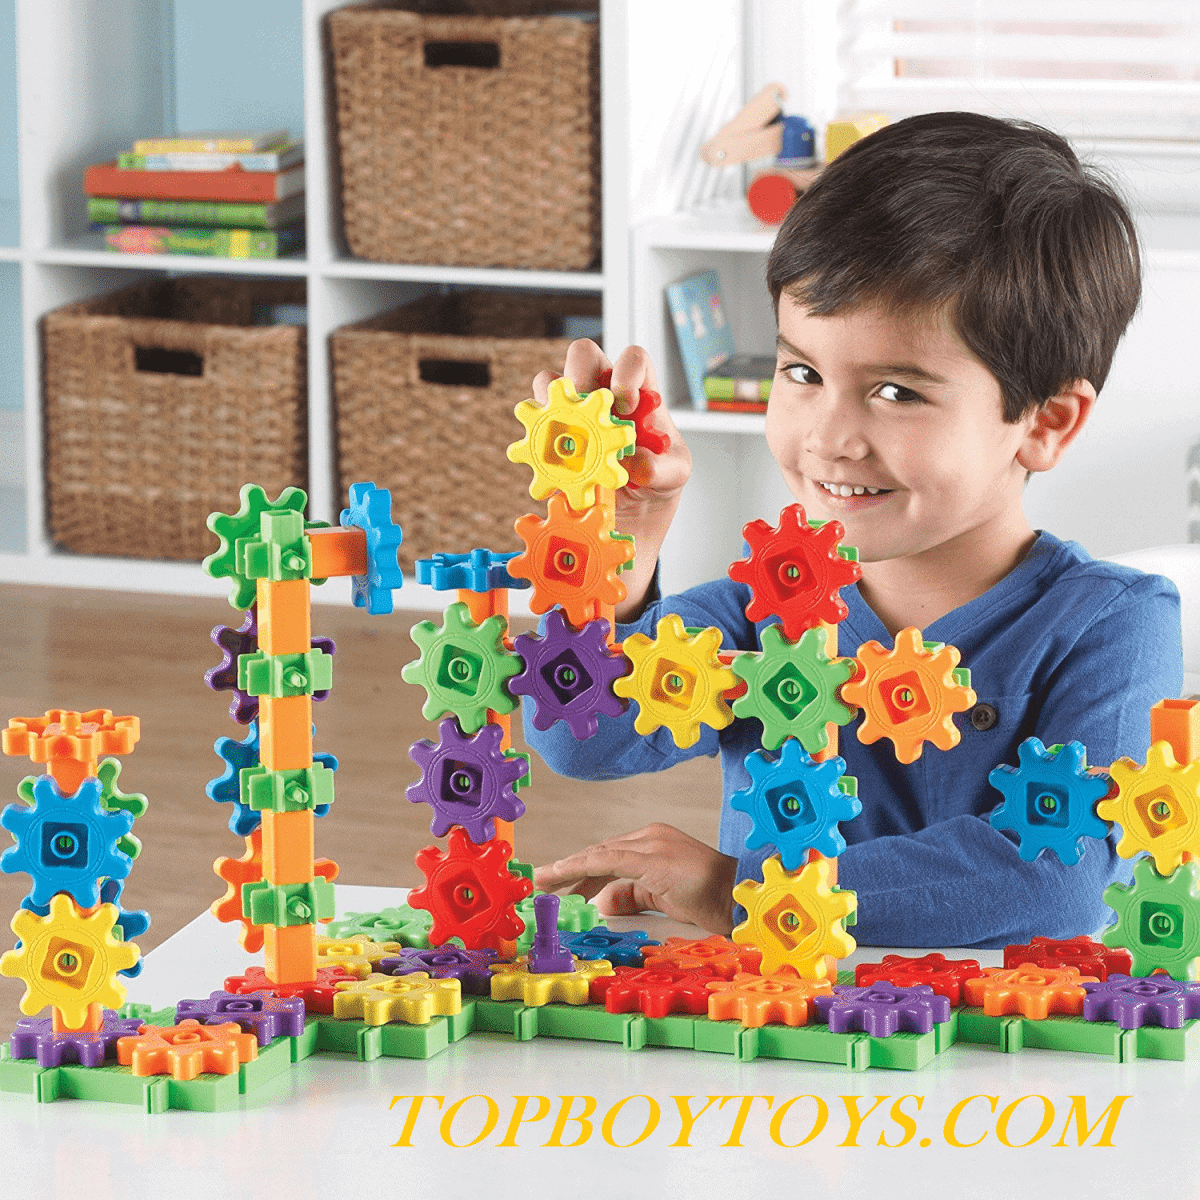 Best Toys And T Ideas For 4 Year Old Boys